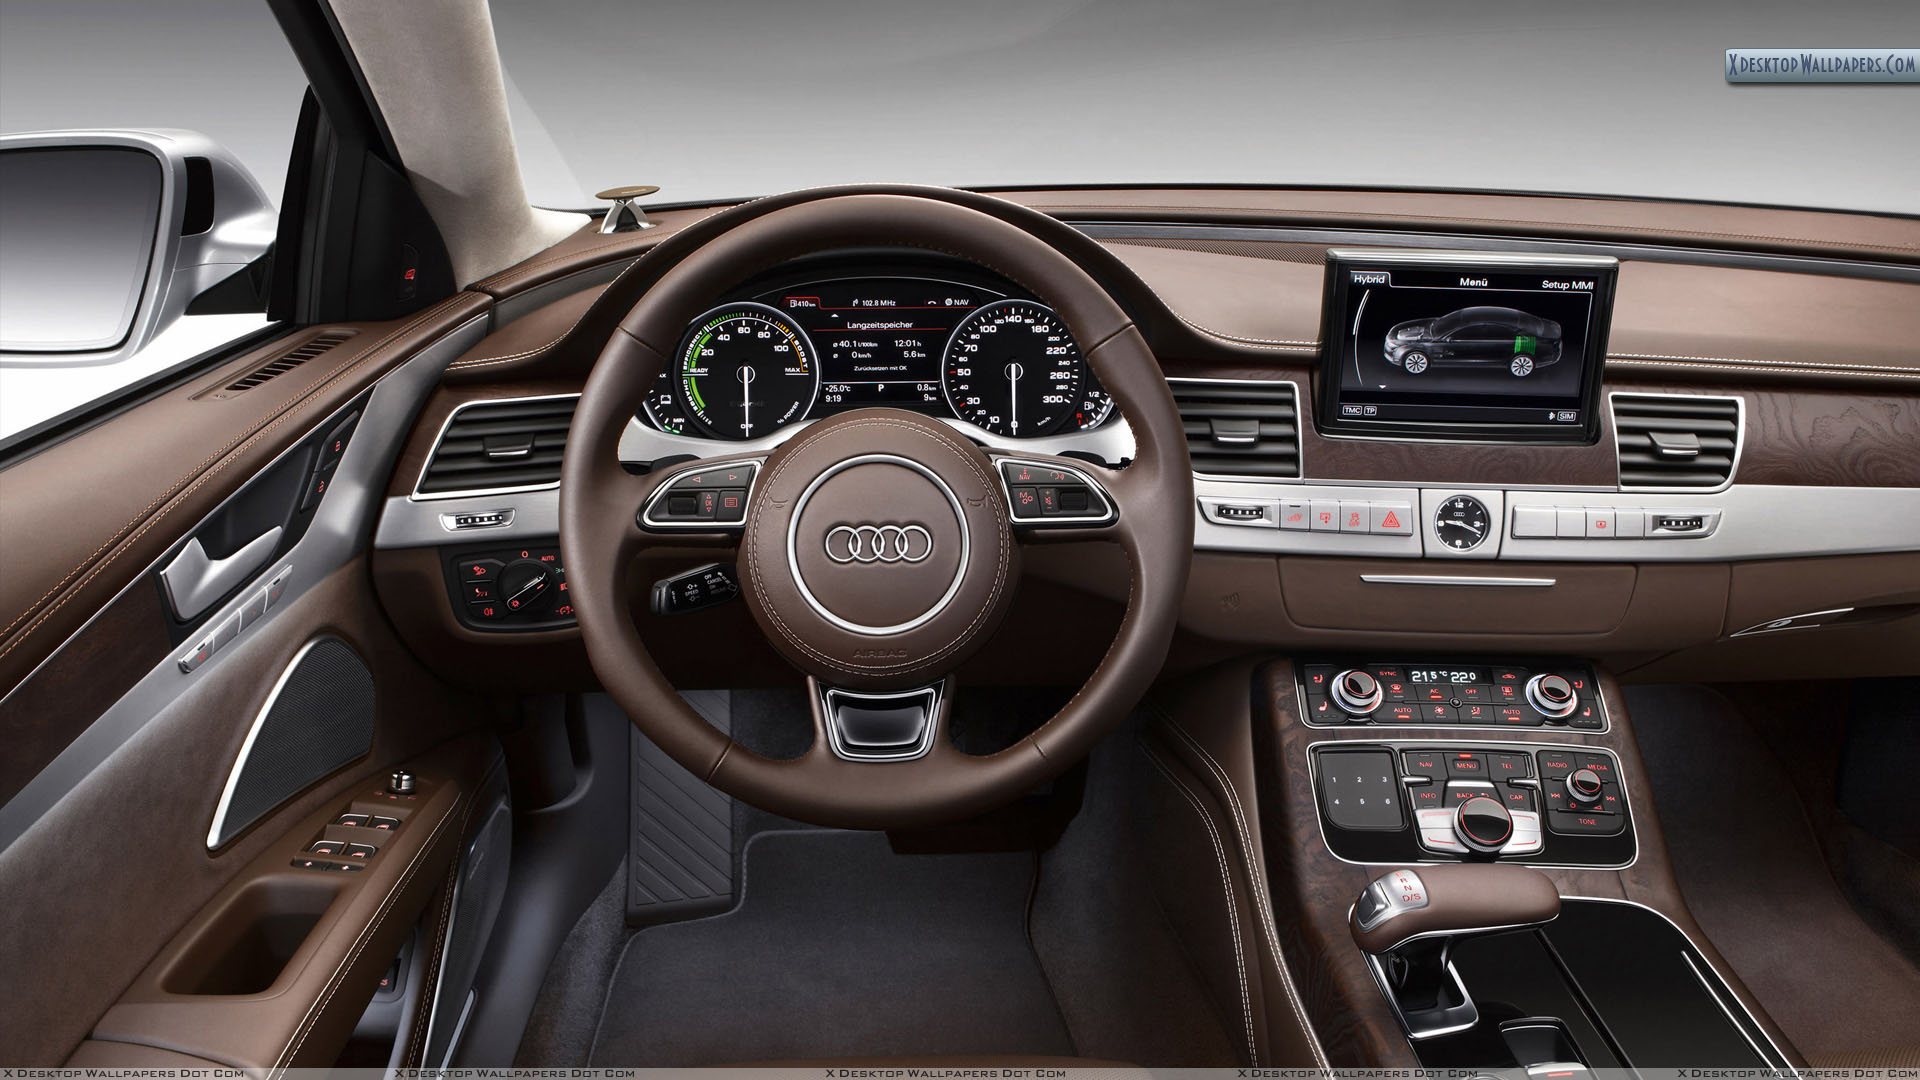 Brown Interior Of 2012 Audi A8 Hybrid Wallpaper Wiring Diagram Q3 You